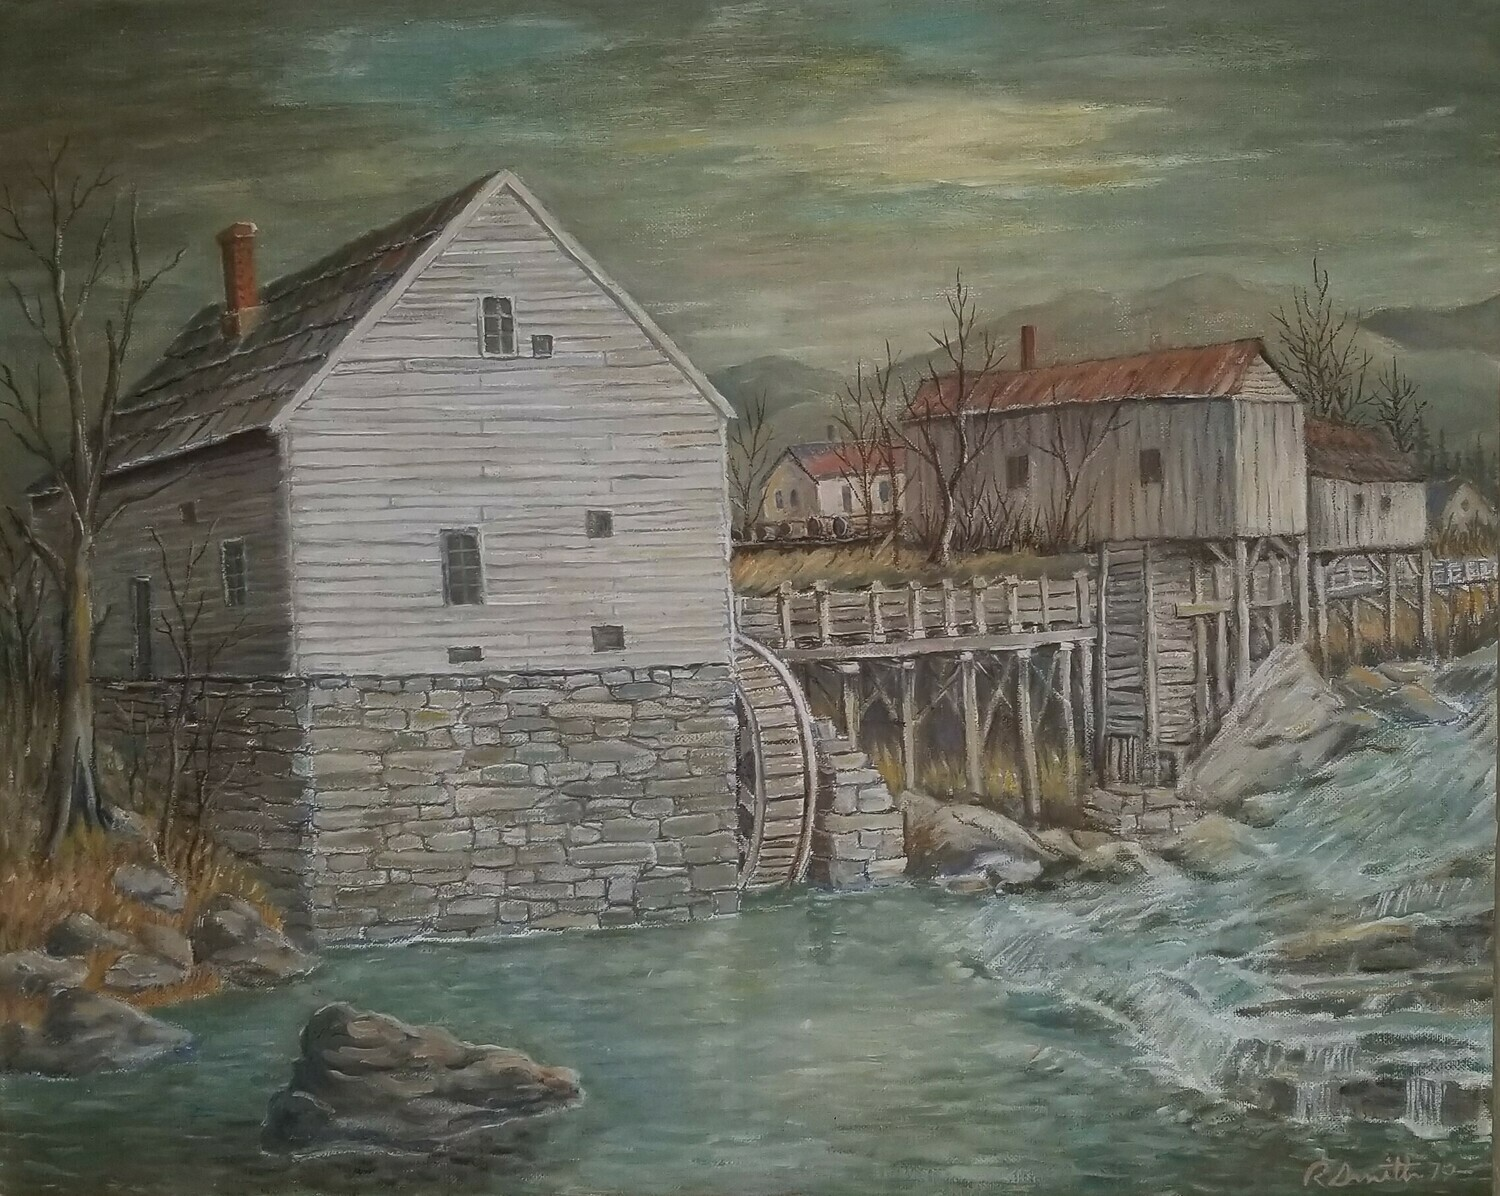 Fiddler's Mill Pool (16x20-original painting - photo included)